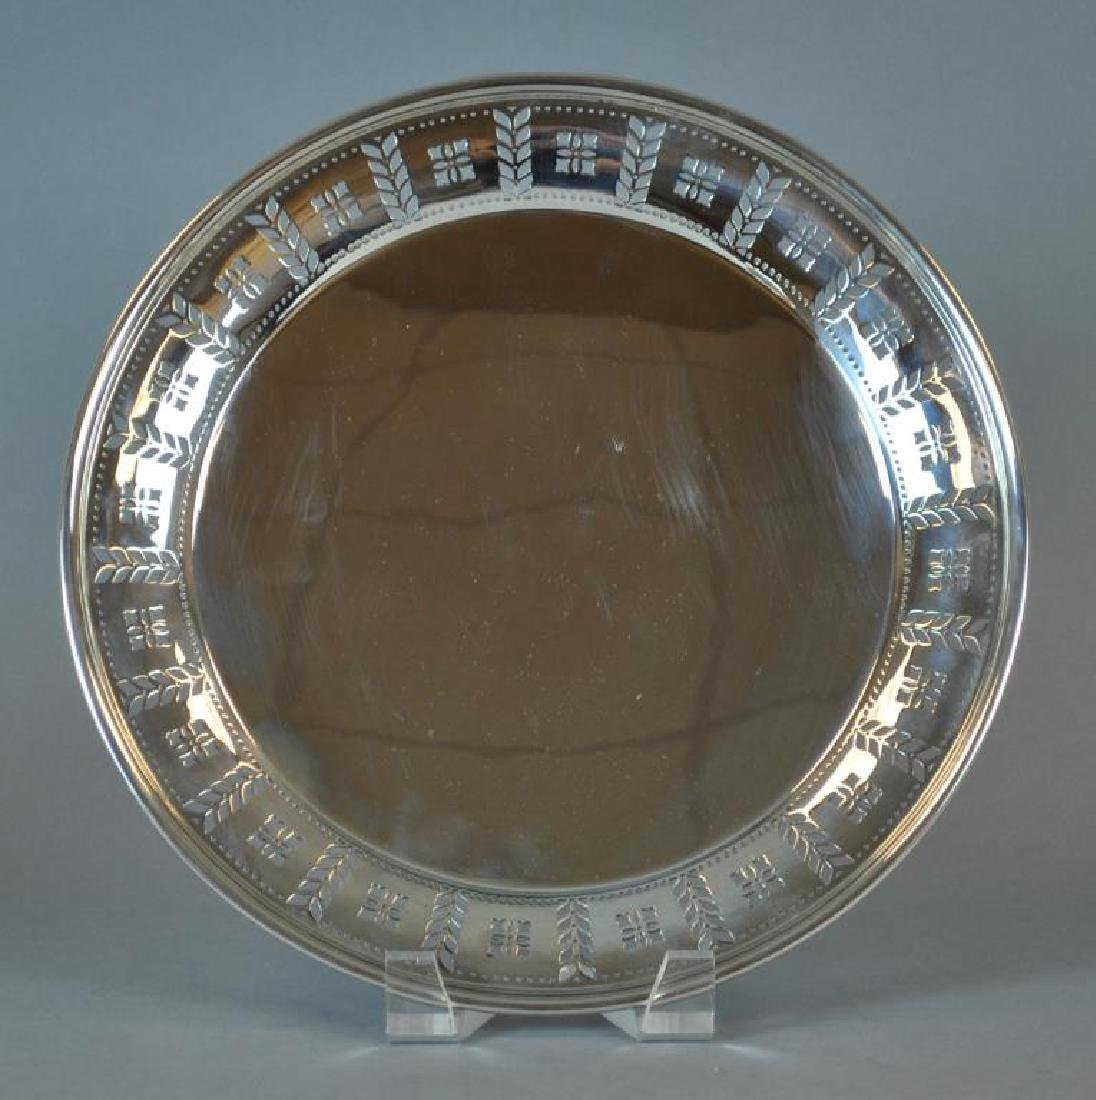 TIFFANY & CO. STERLING PIERCED SALVER